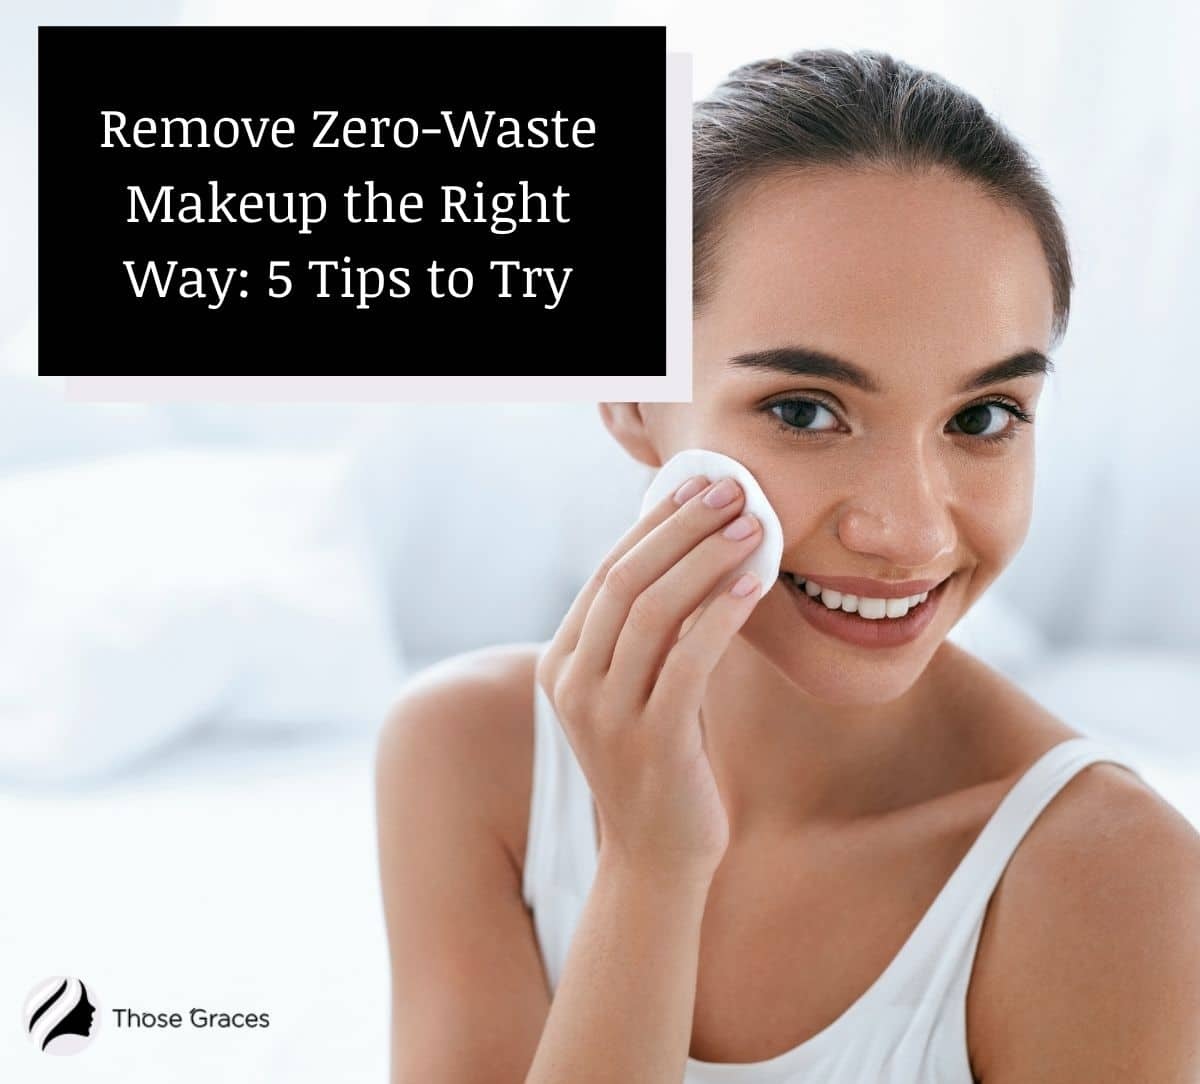 a lady using a reusable cloth to remove zero-waste makeup